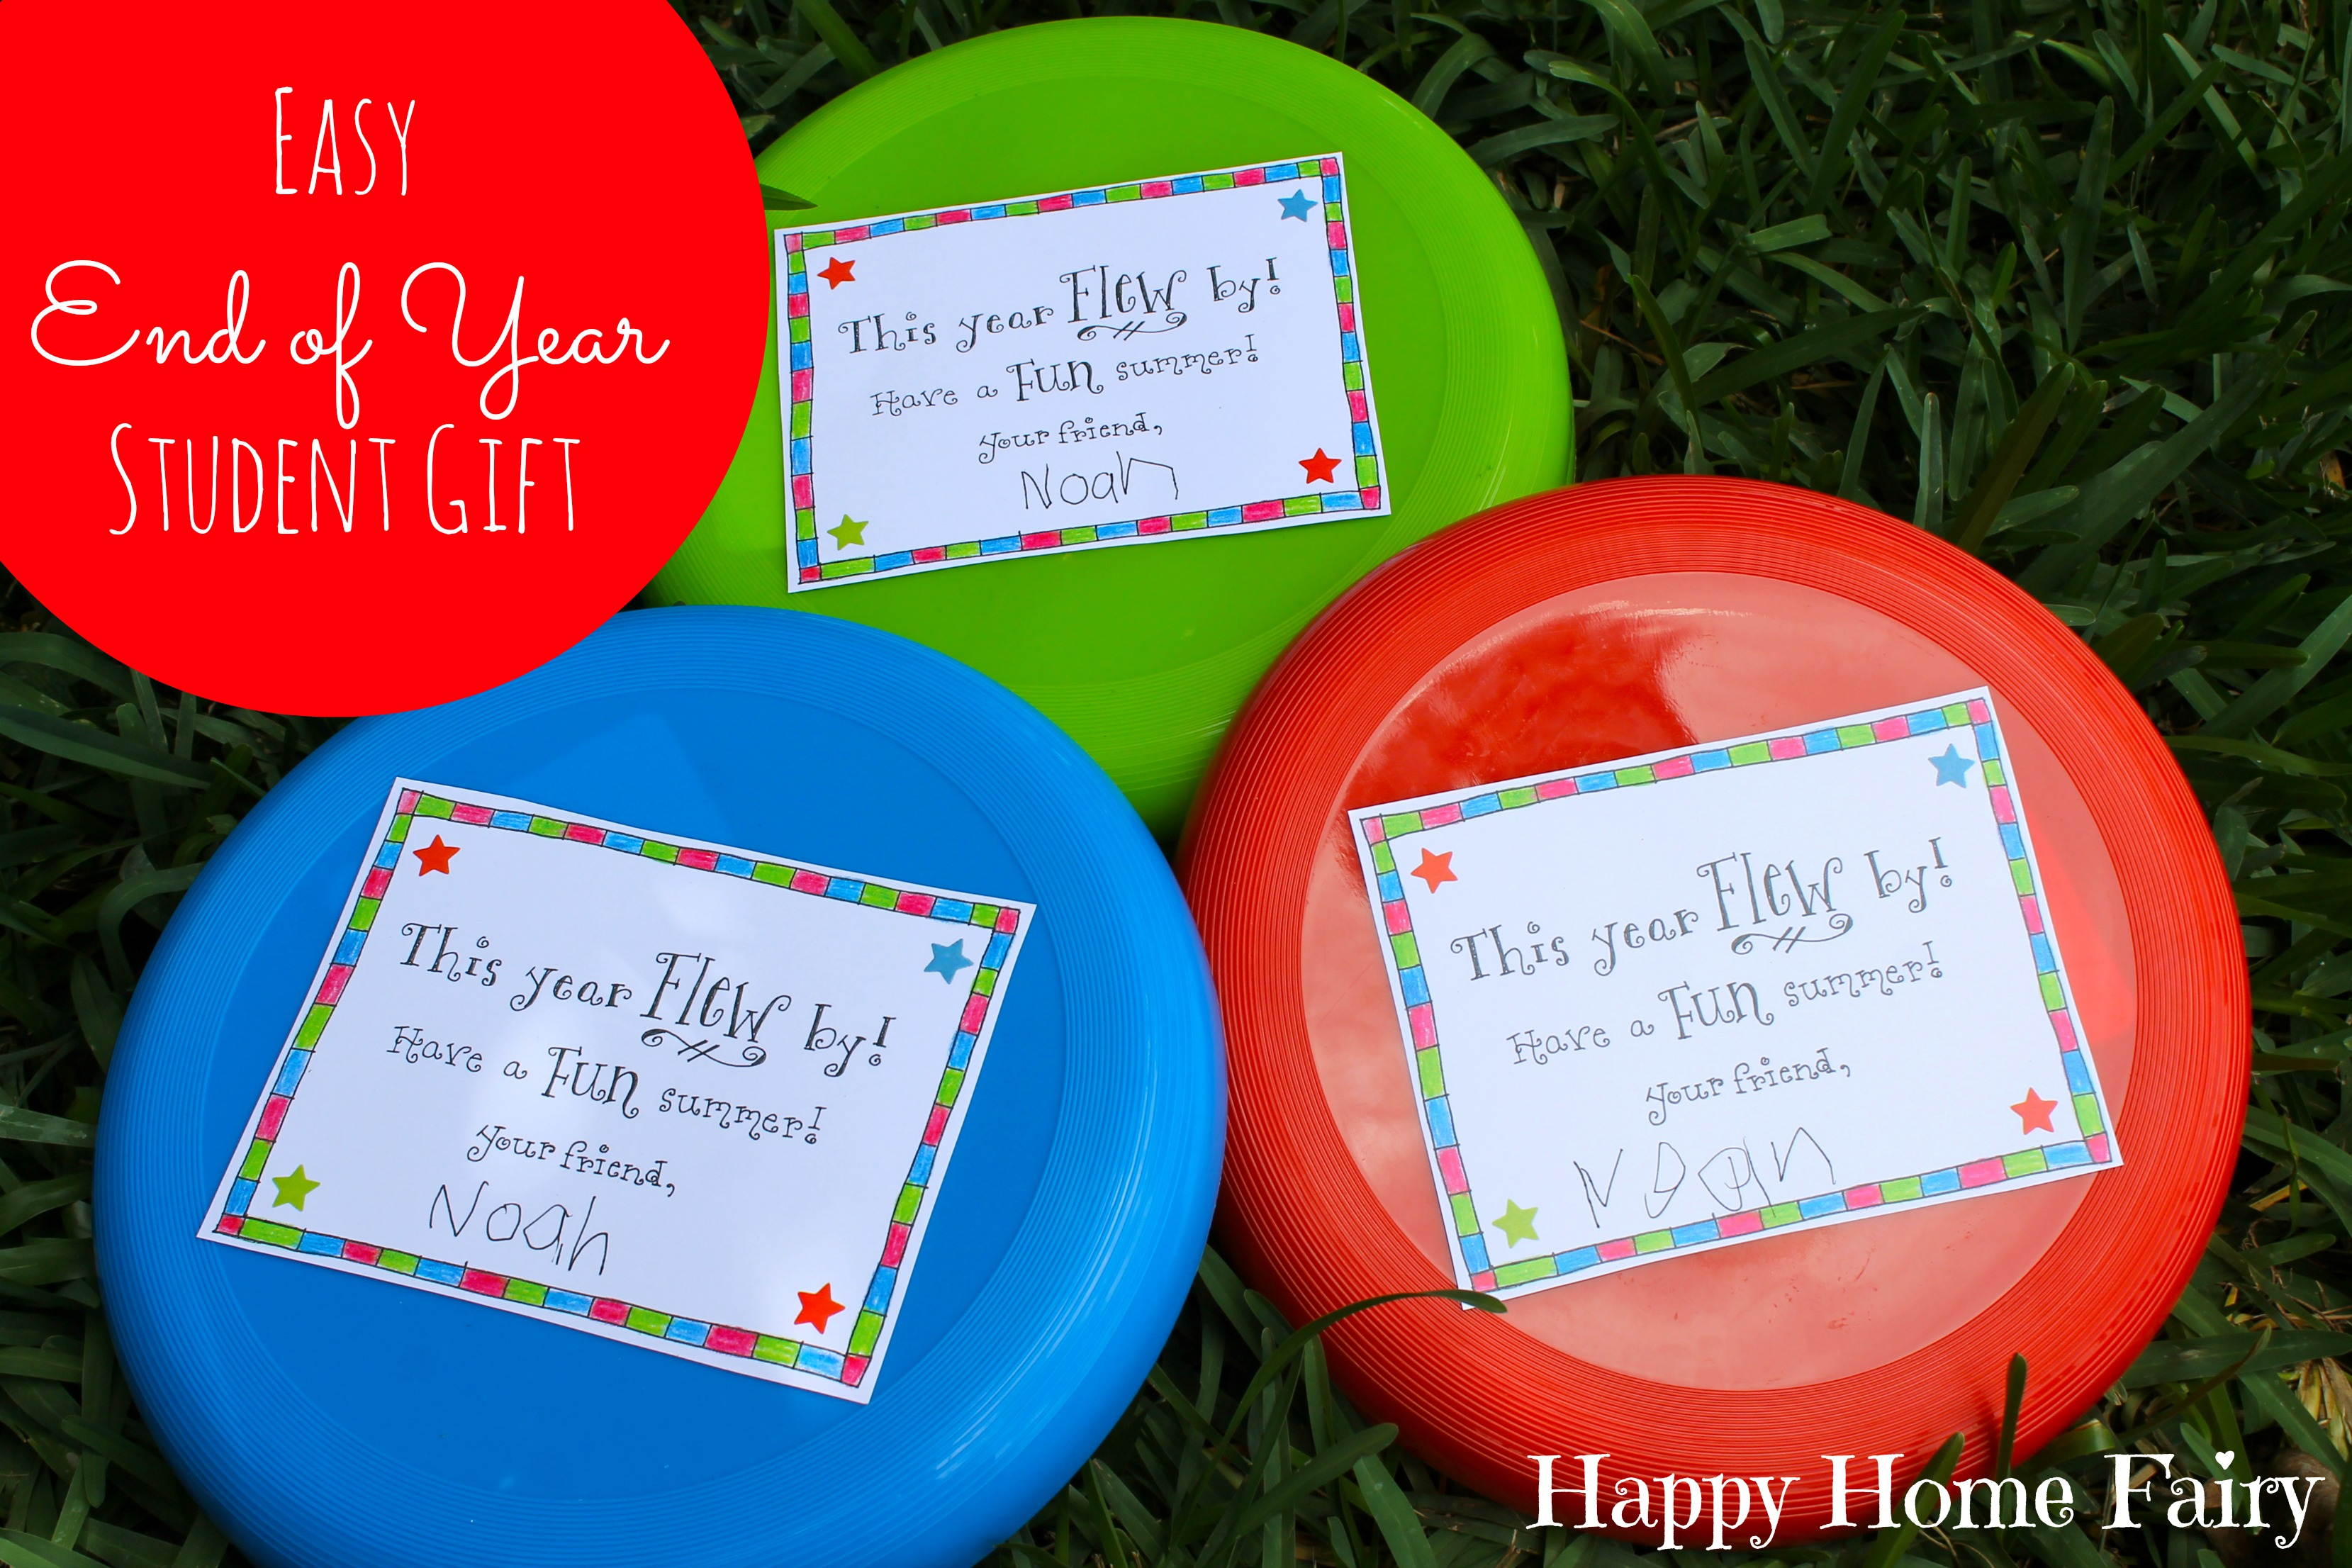 Easy End of Year Student Gift - FREE Printable! - Happy Home Fairy